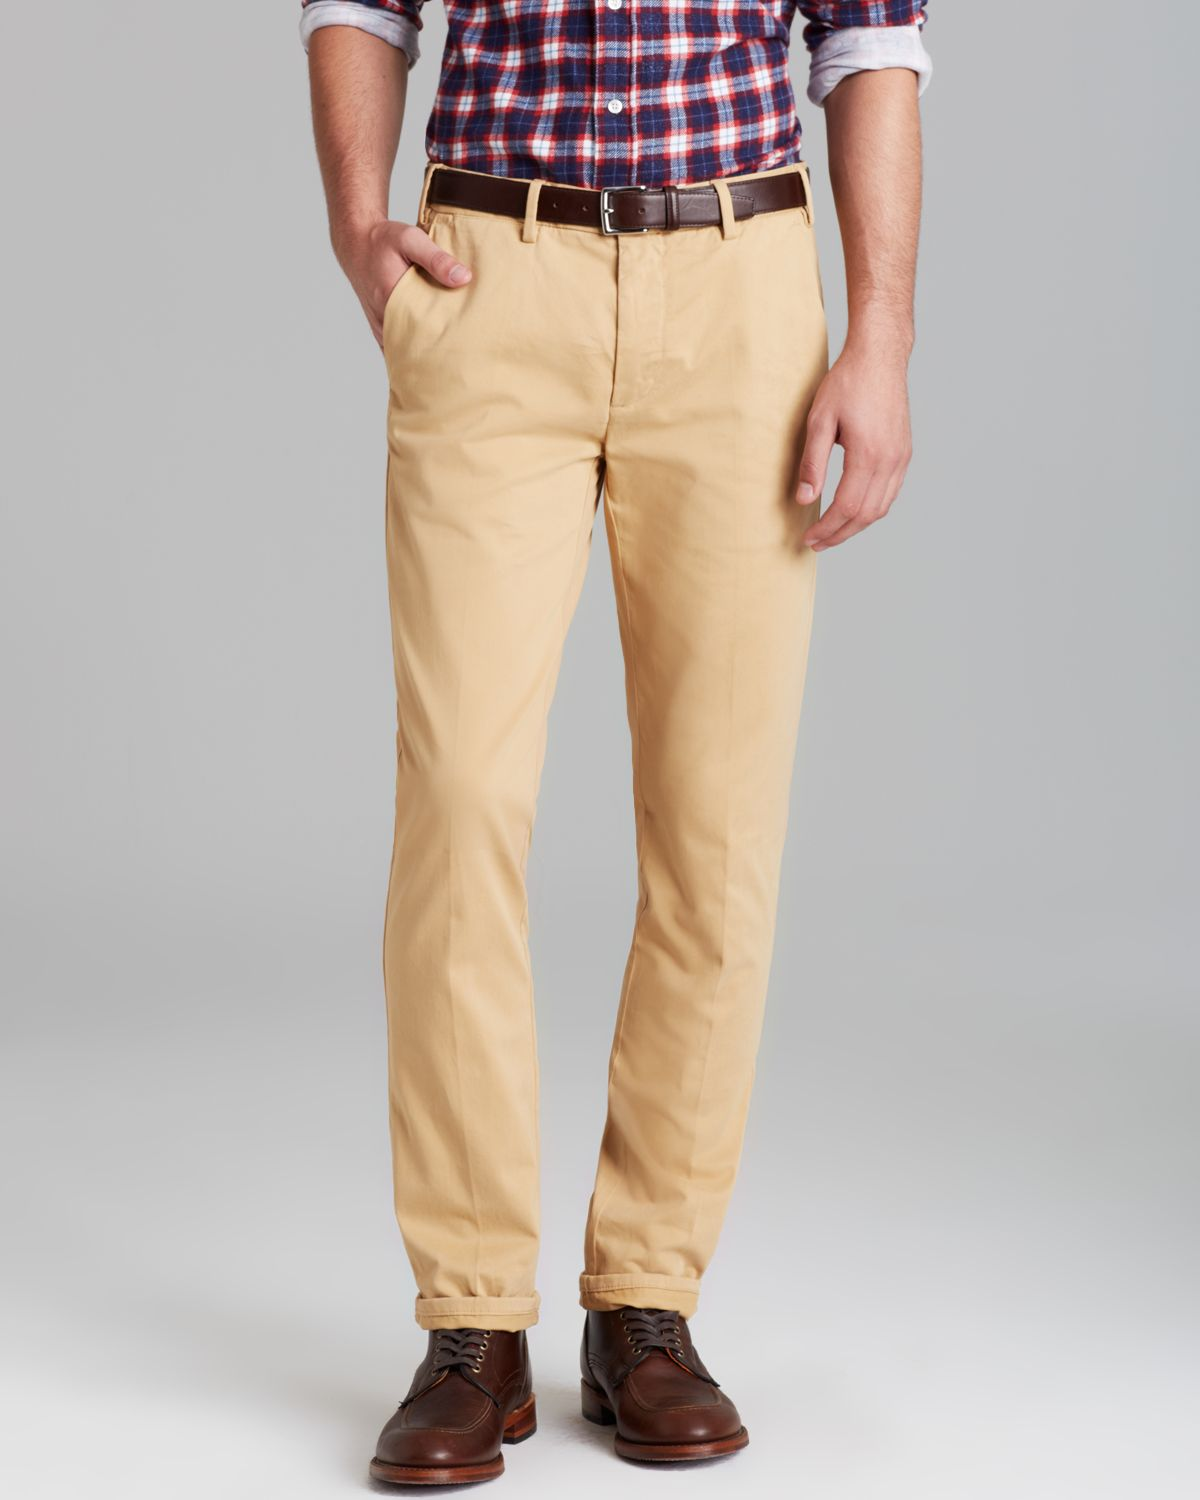 9ddbe779fa0de8 Gant Rugger Slim Fit Chino Pants in Brown for Men - Lyst